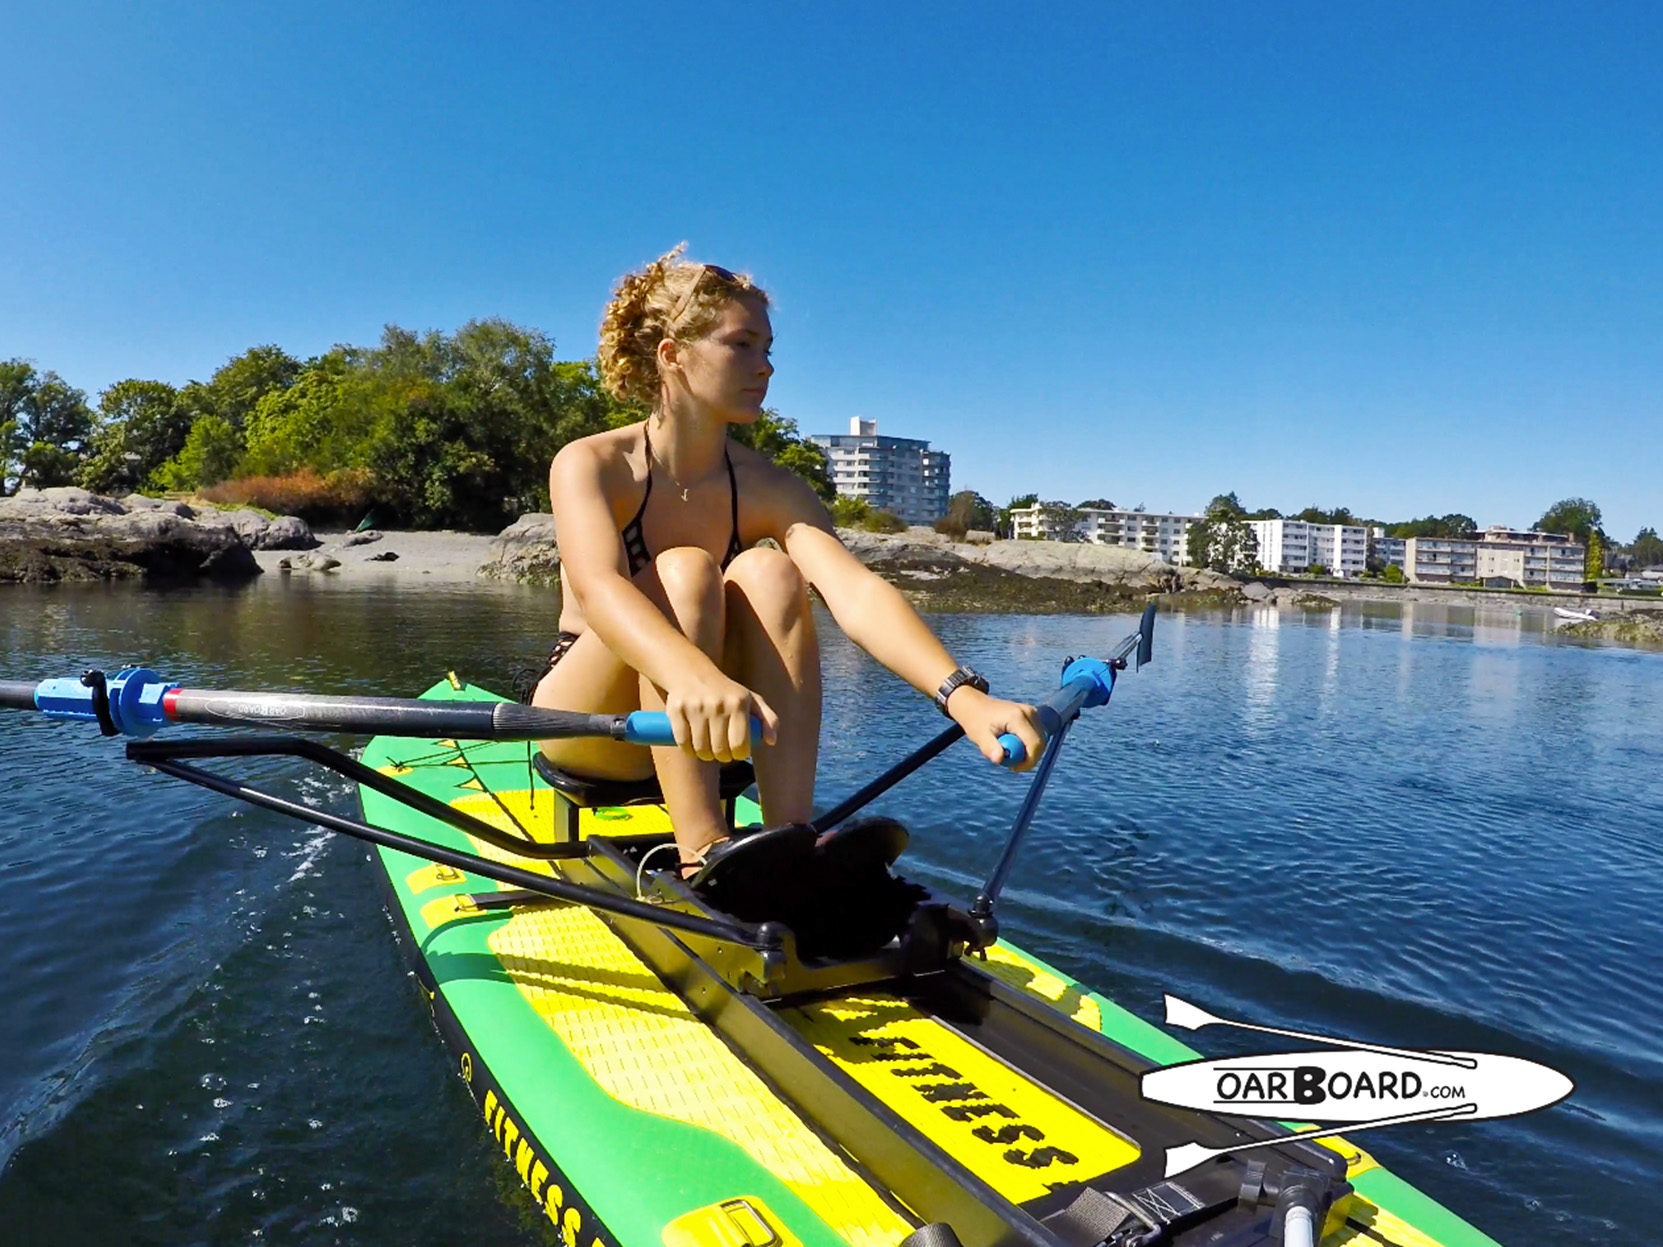 oar-board-stand-up-paddle-board-rower-whitehall-rowing-and-sail-Kess-Blog-4